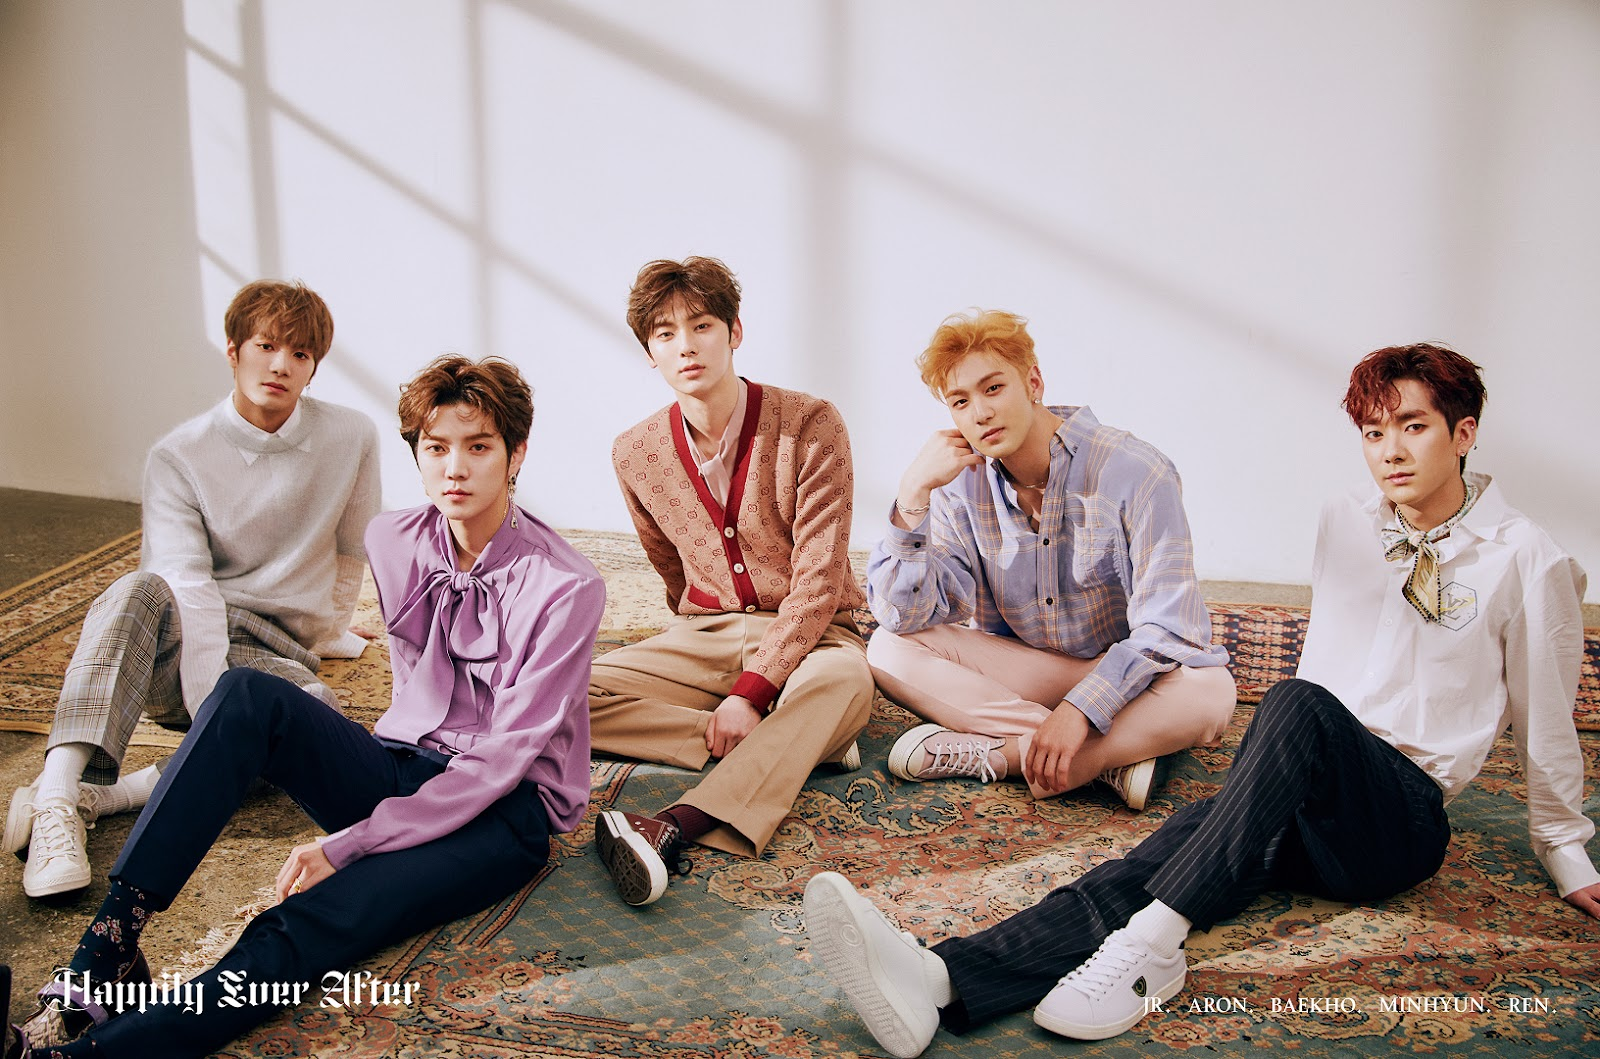 NU'EST_Happily_Ever_After_group_promo_photo